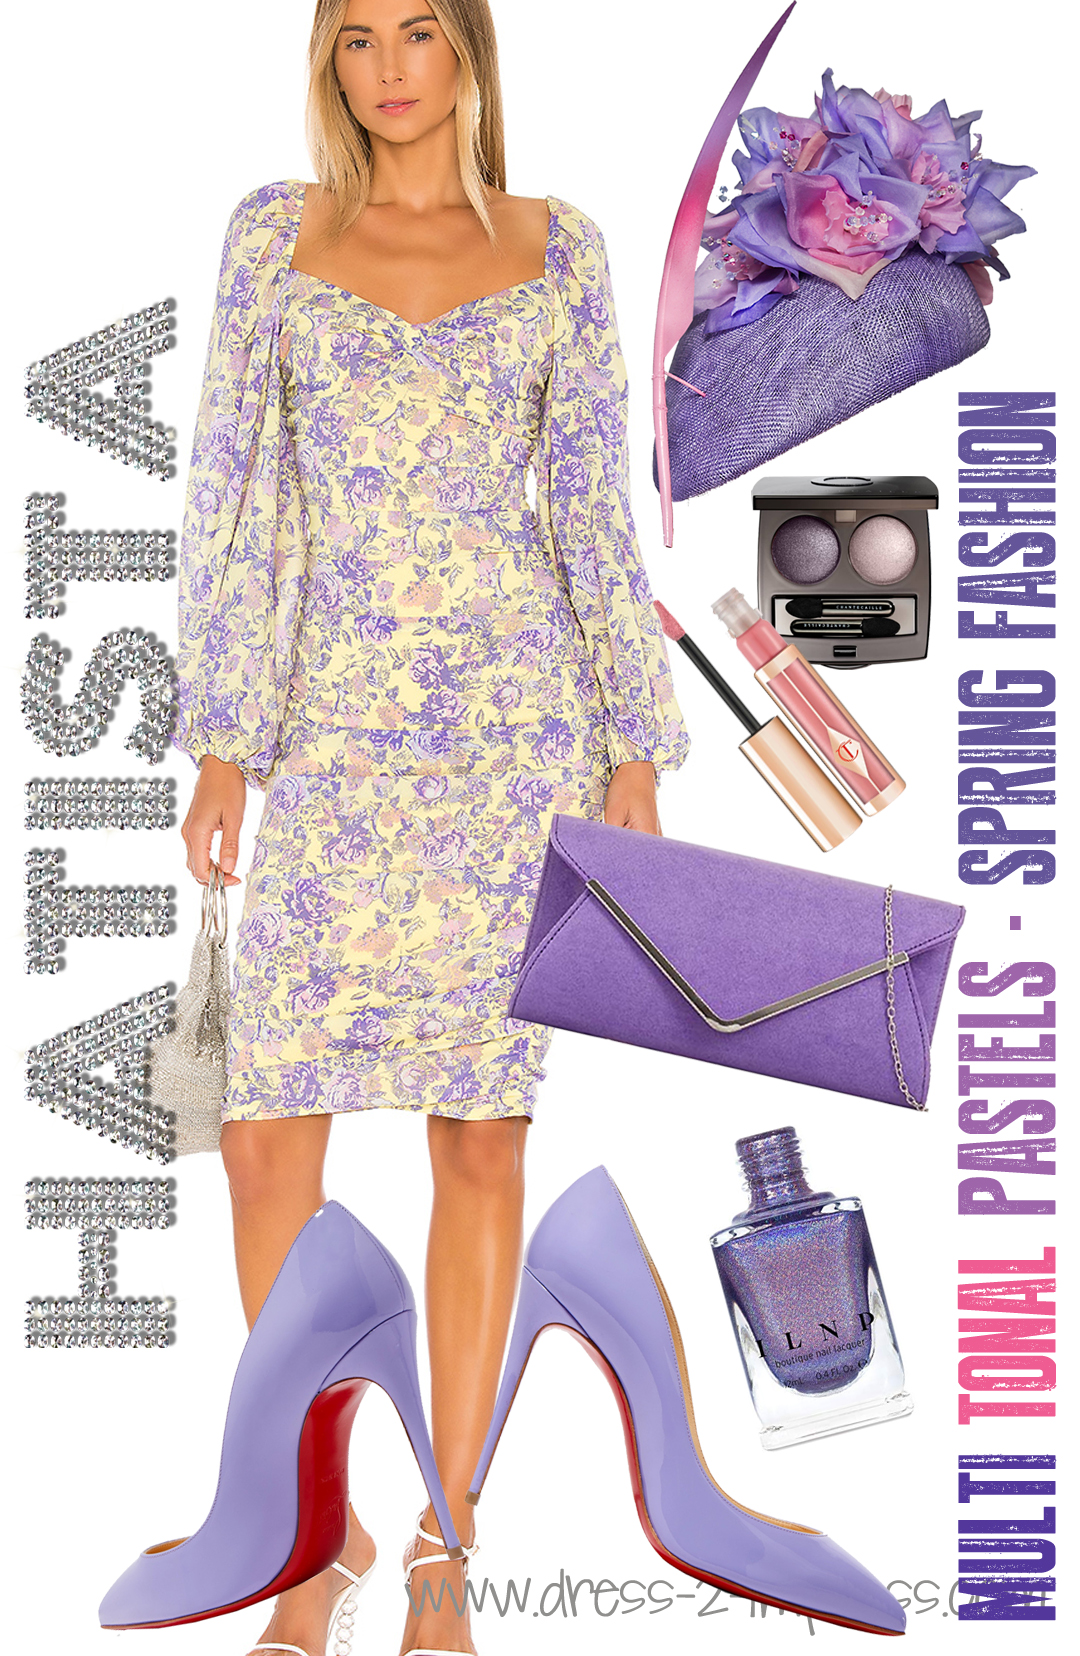 How to Wear Pastels. What to wear with Lilac. Pastel Mother of the Bride Outfits. What to wear to the races. What to wear for the Kentucky Derby. What to wear to a Summer Wedding. Floral Hats. Outfit Ideas for the Races. Lilac Pastel Kentucky Derby Outfit.